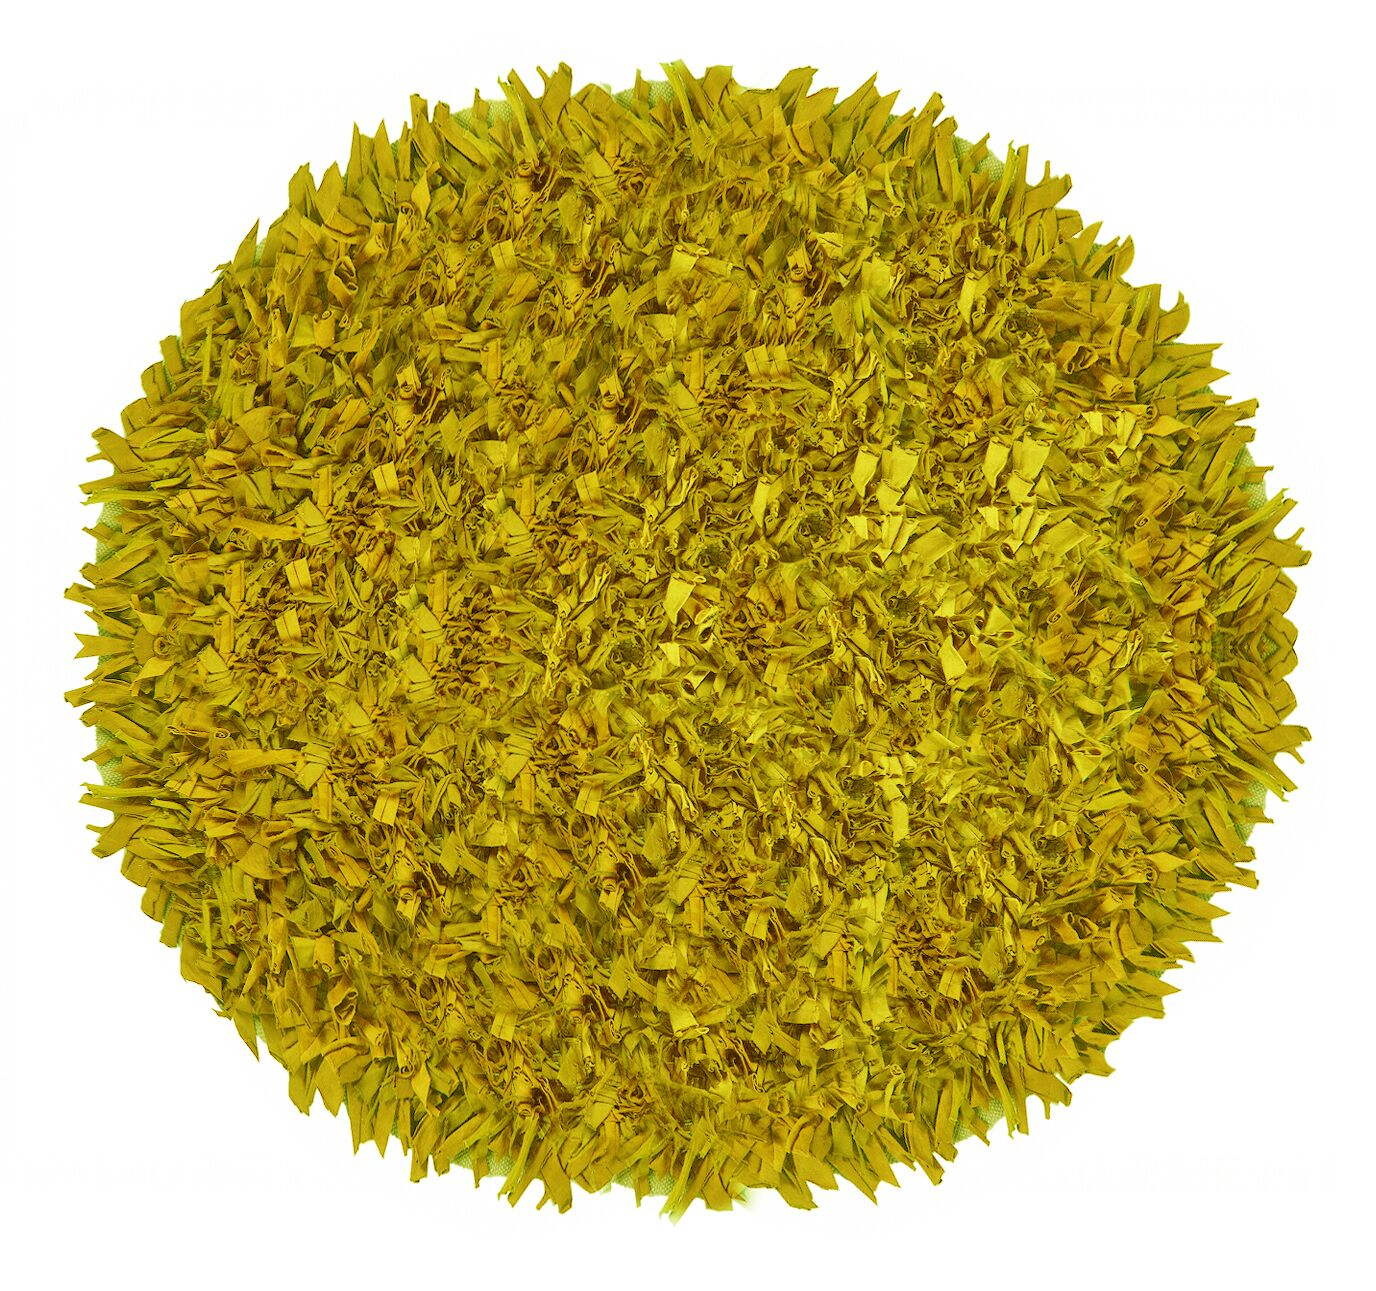 Kaylyn Hand-Knotted Cotton Yellow Area Rug Rug Size: Round 4'9